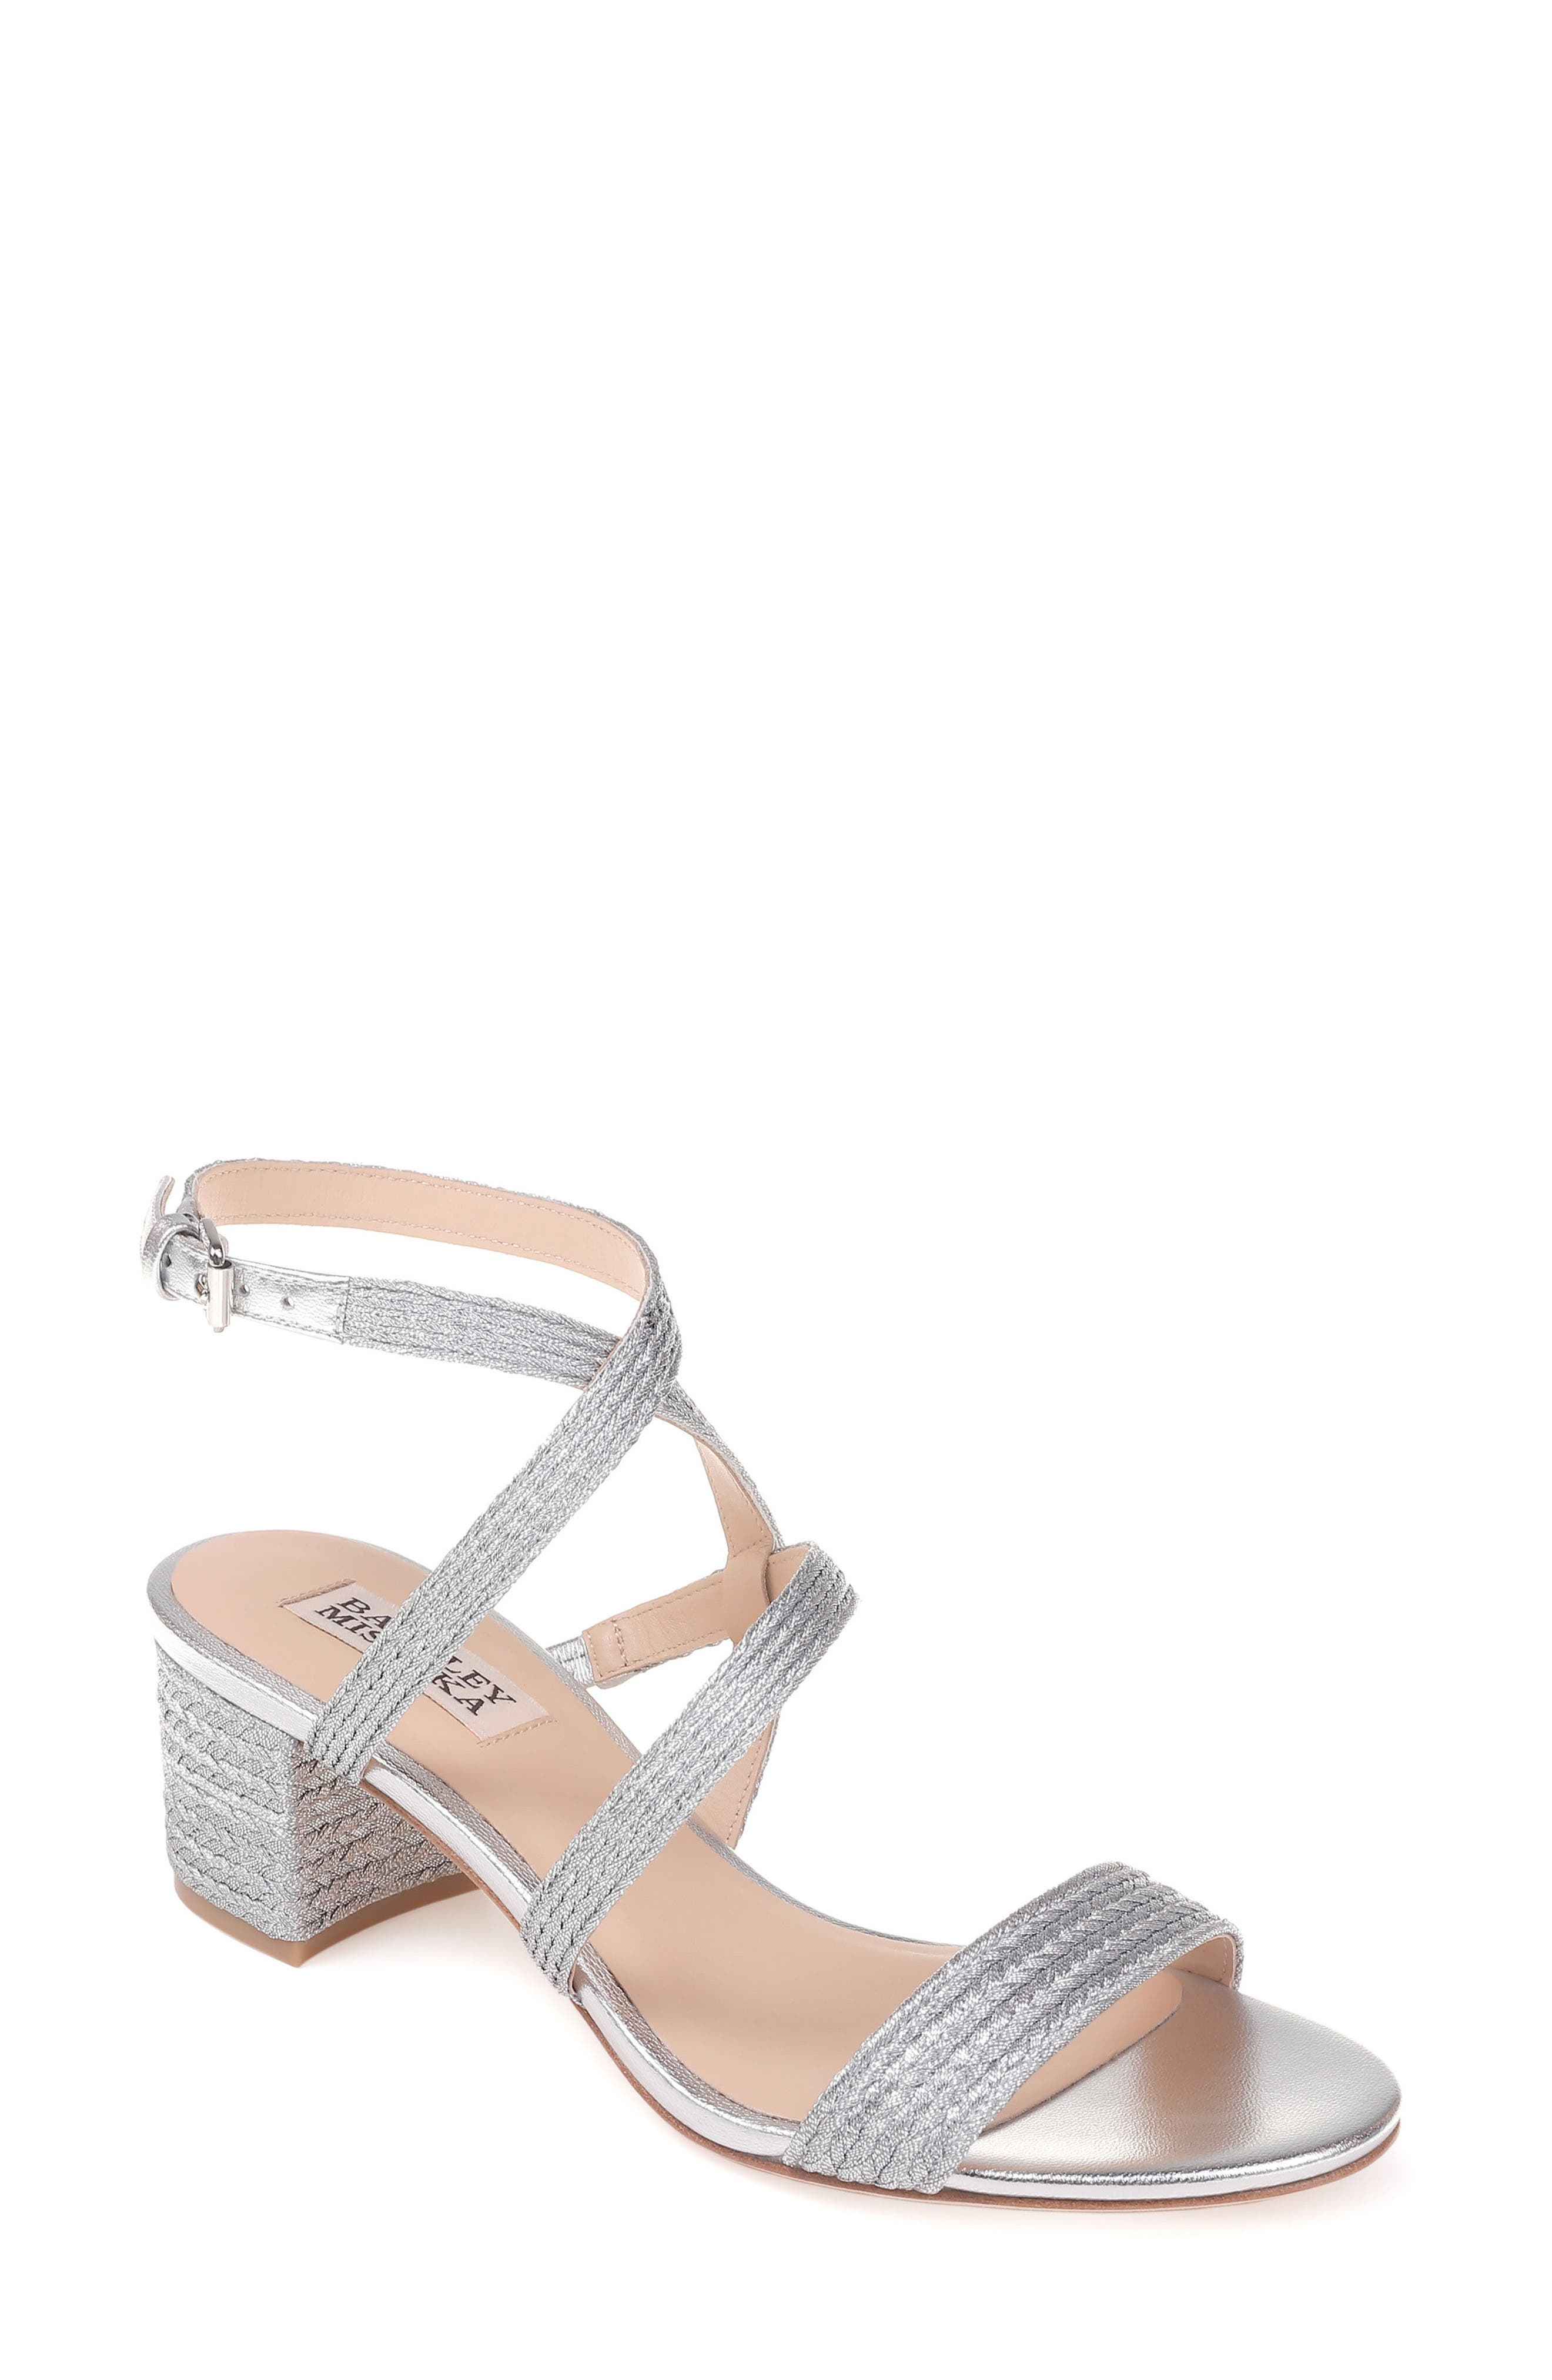 Alternate Image 1 Selected - Badgley Mischka Storm Block Heel Sandal (Women)